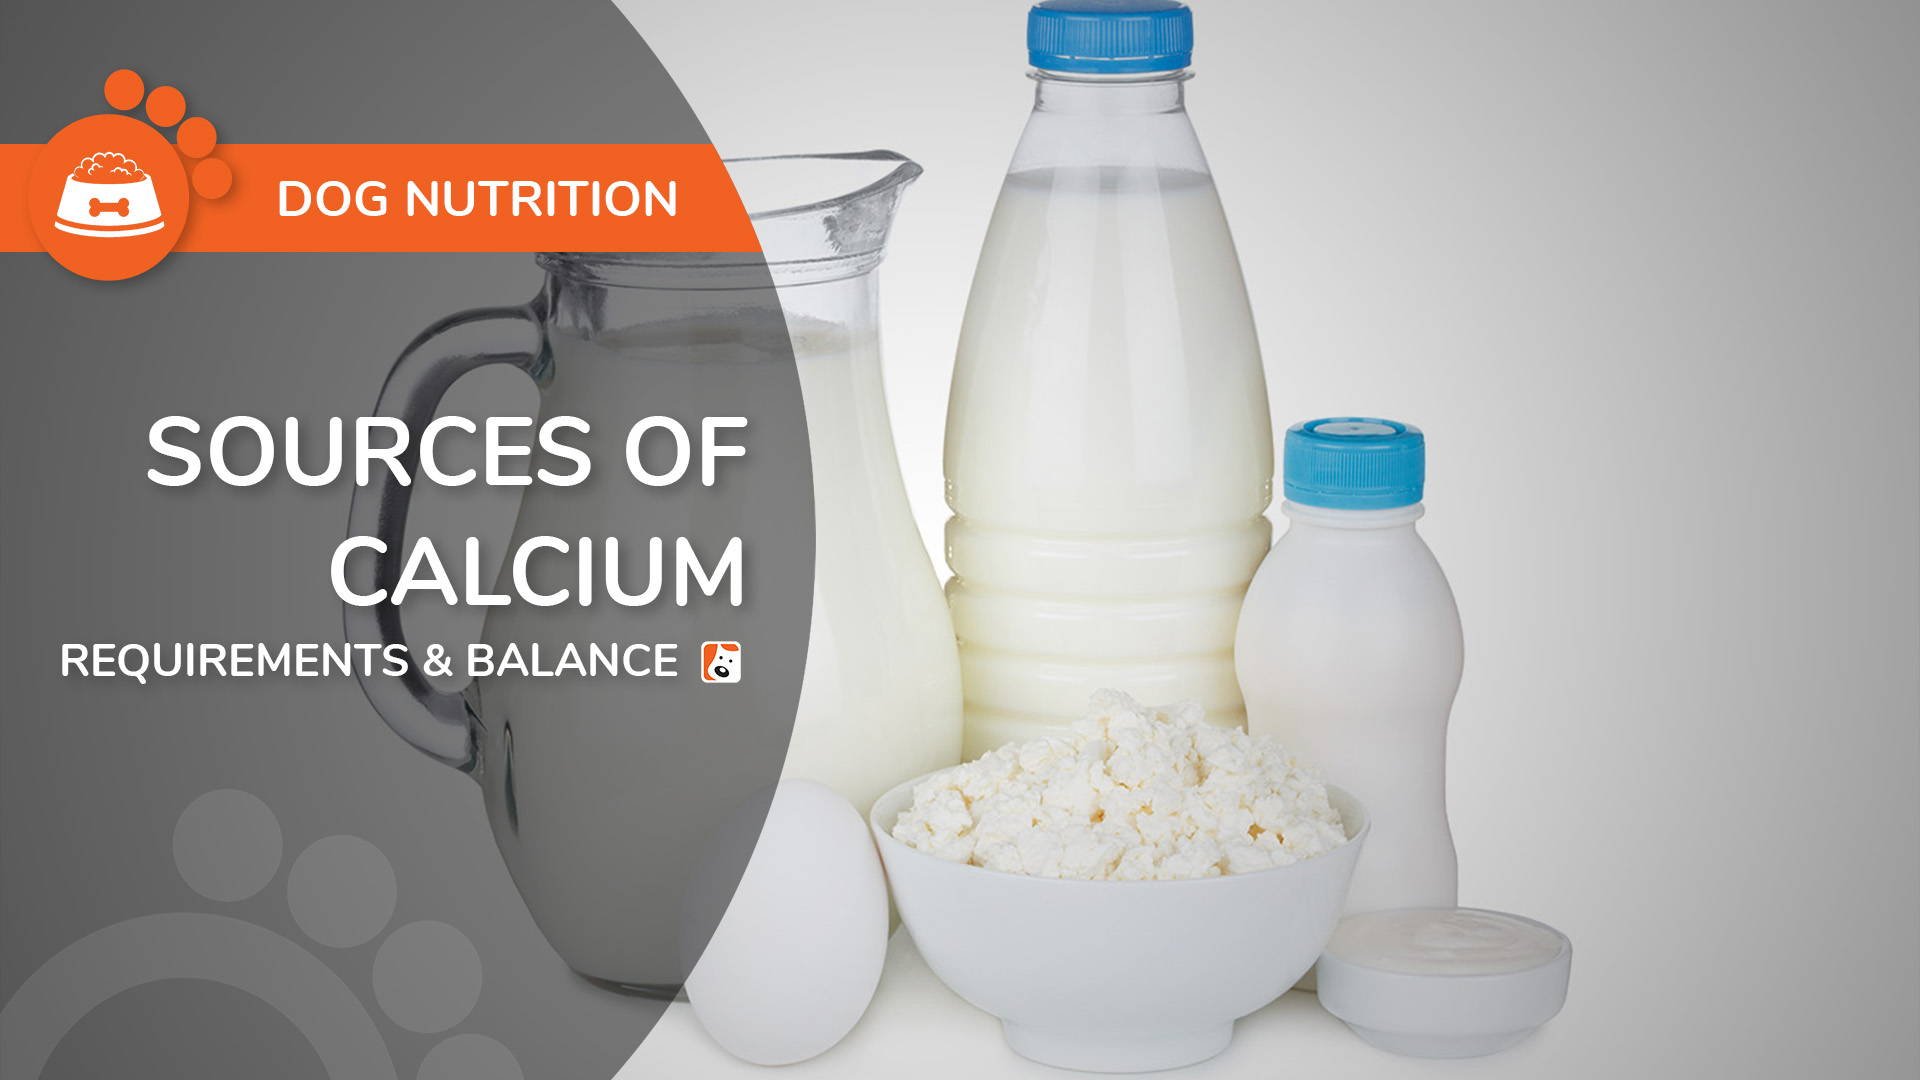 Source of Calcium for Dogs